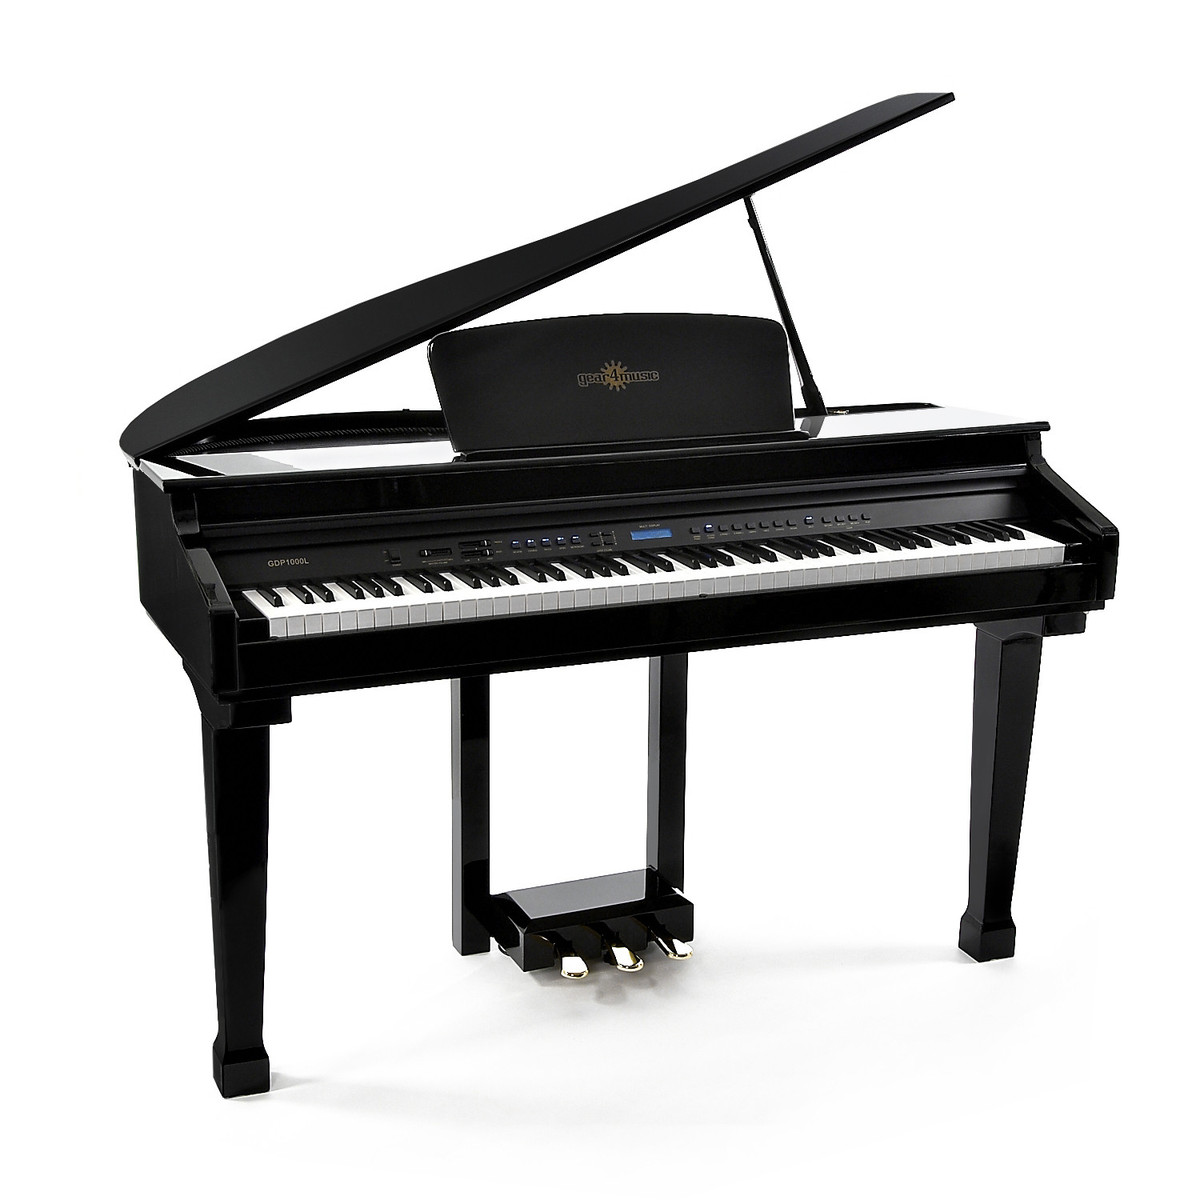 Gdp 100 Digital Grand Piano By Gear4music B Stock At